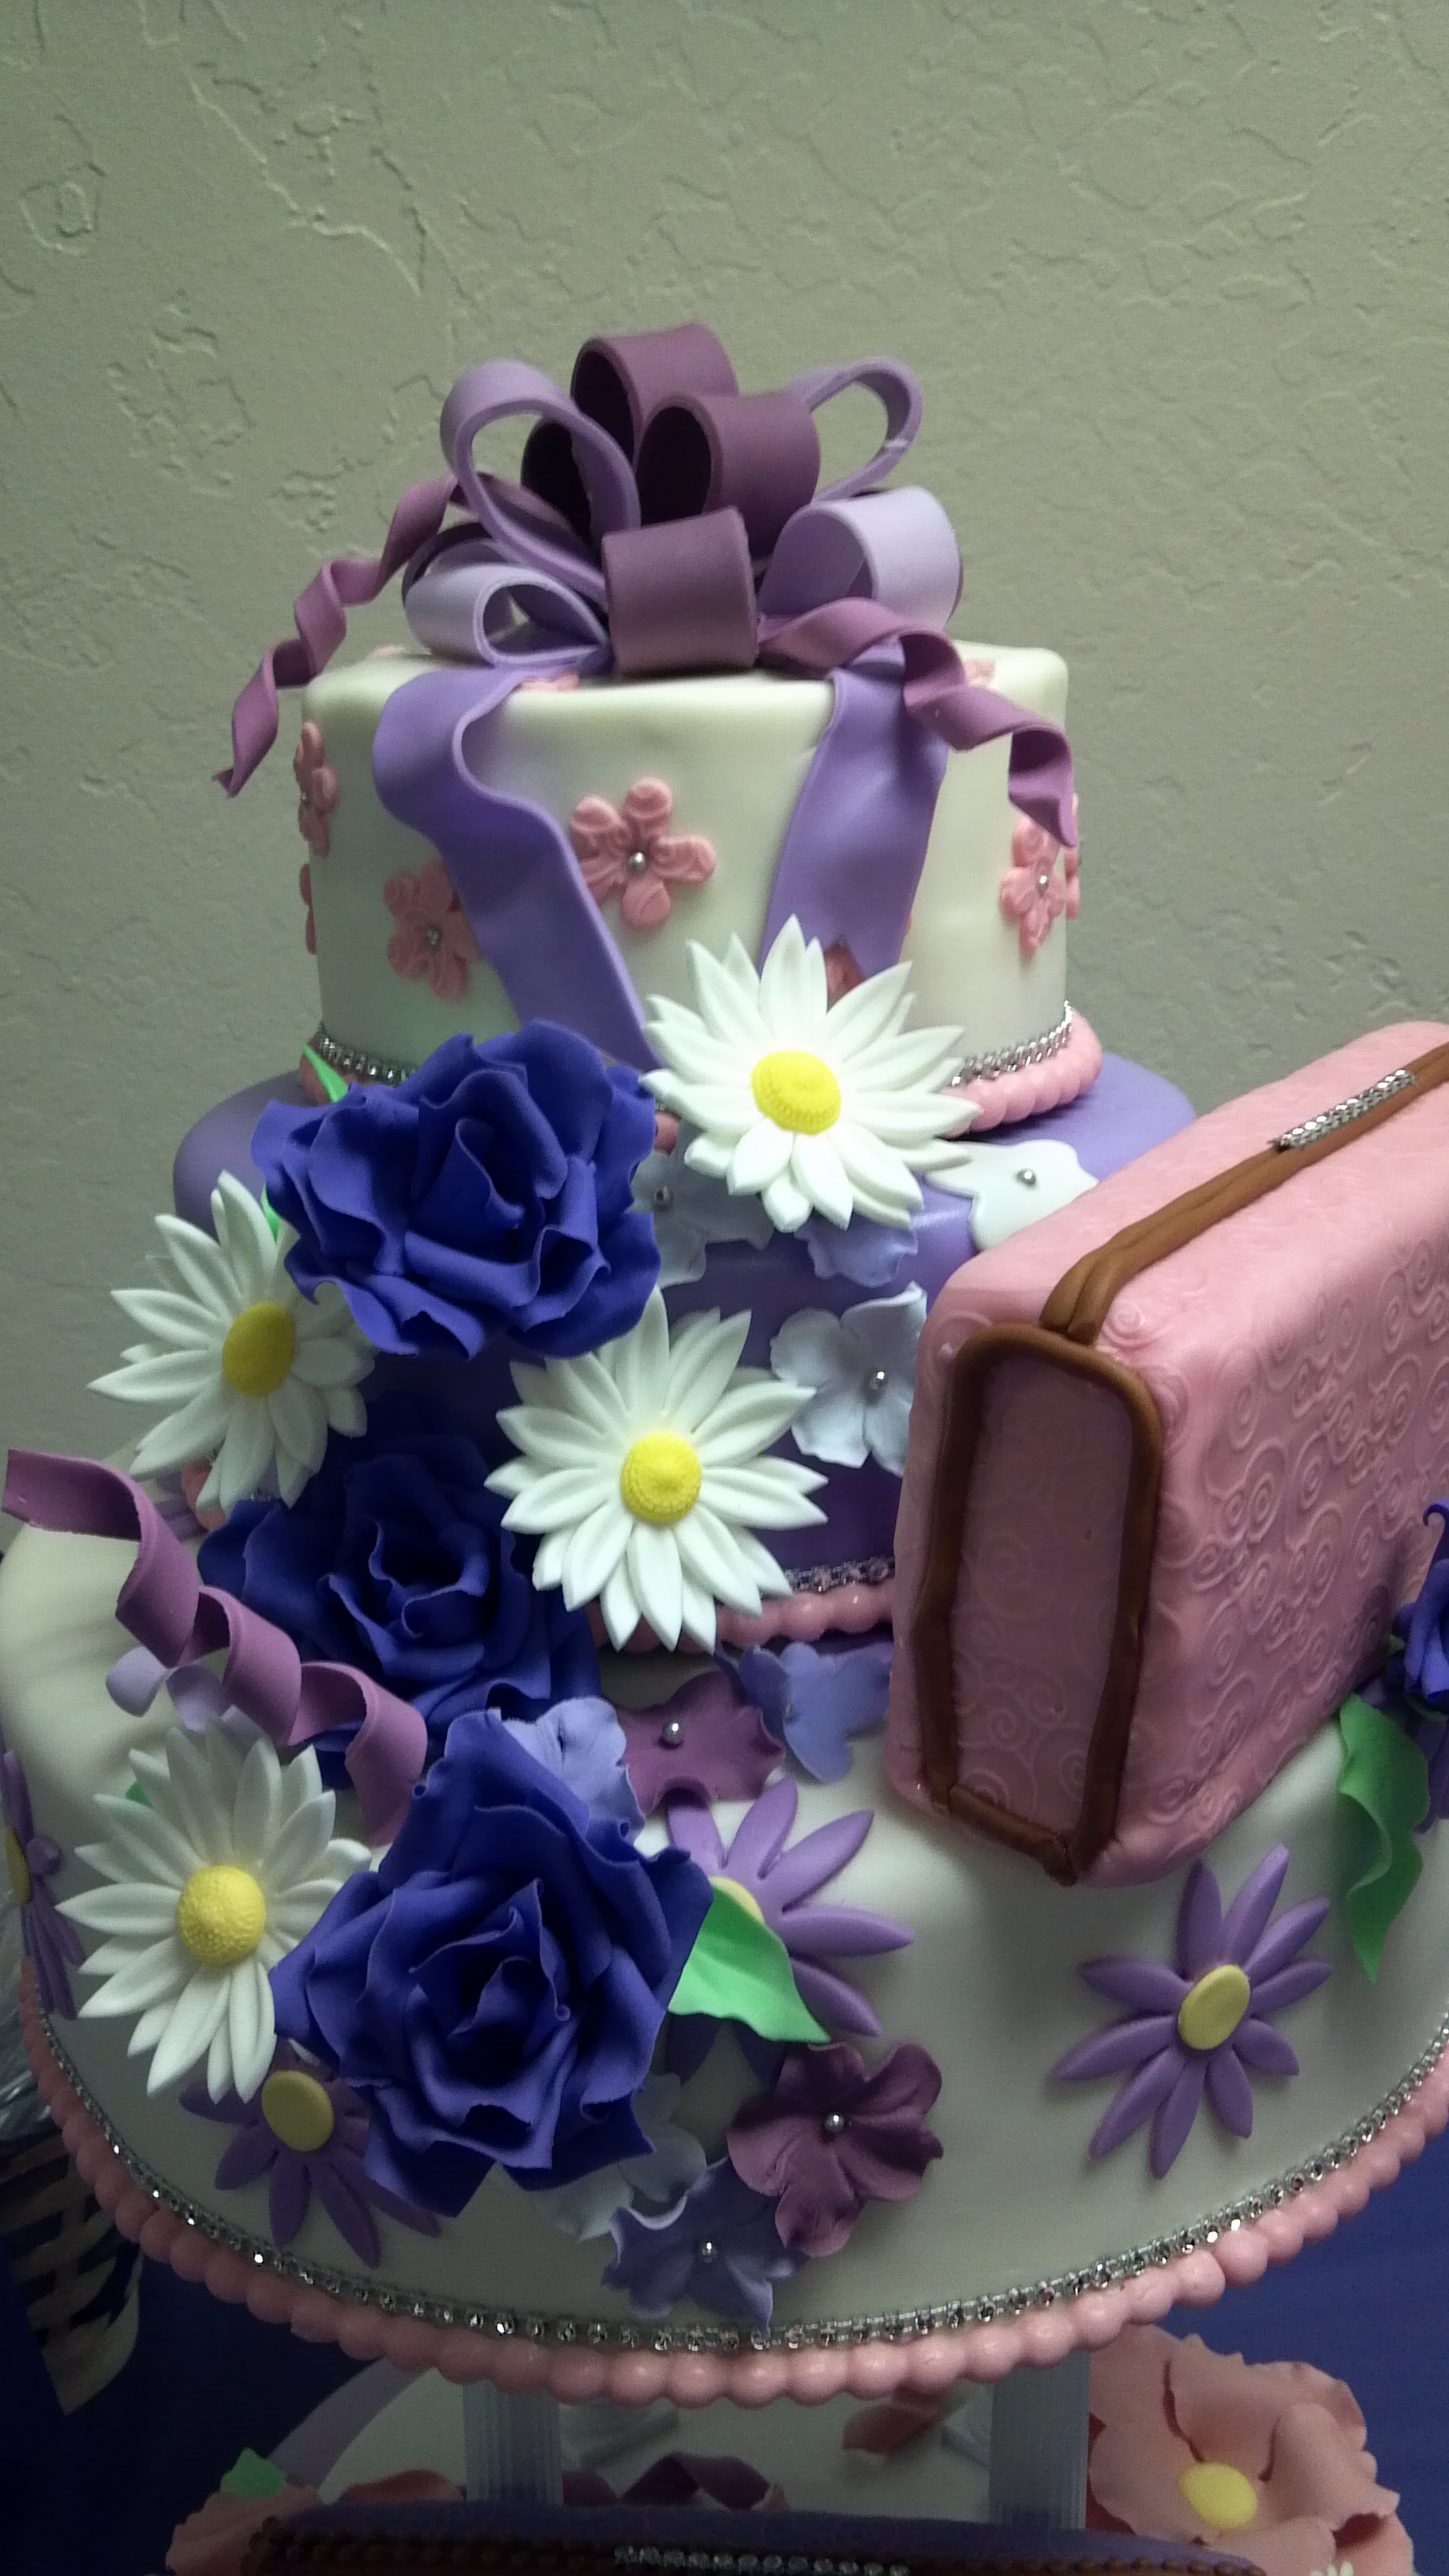 50th Birthday Cake Birthday Gal Likes Purses And Flowers Cake Is